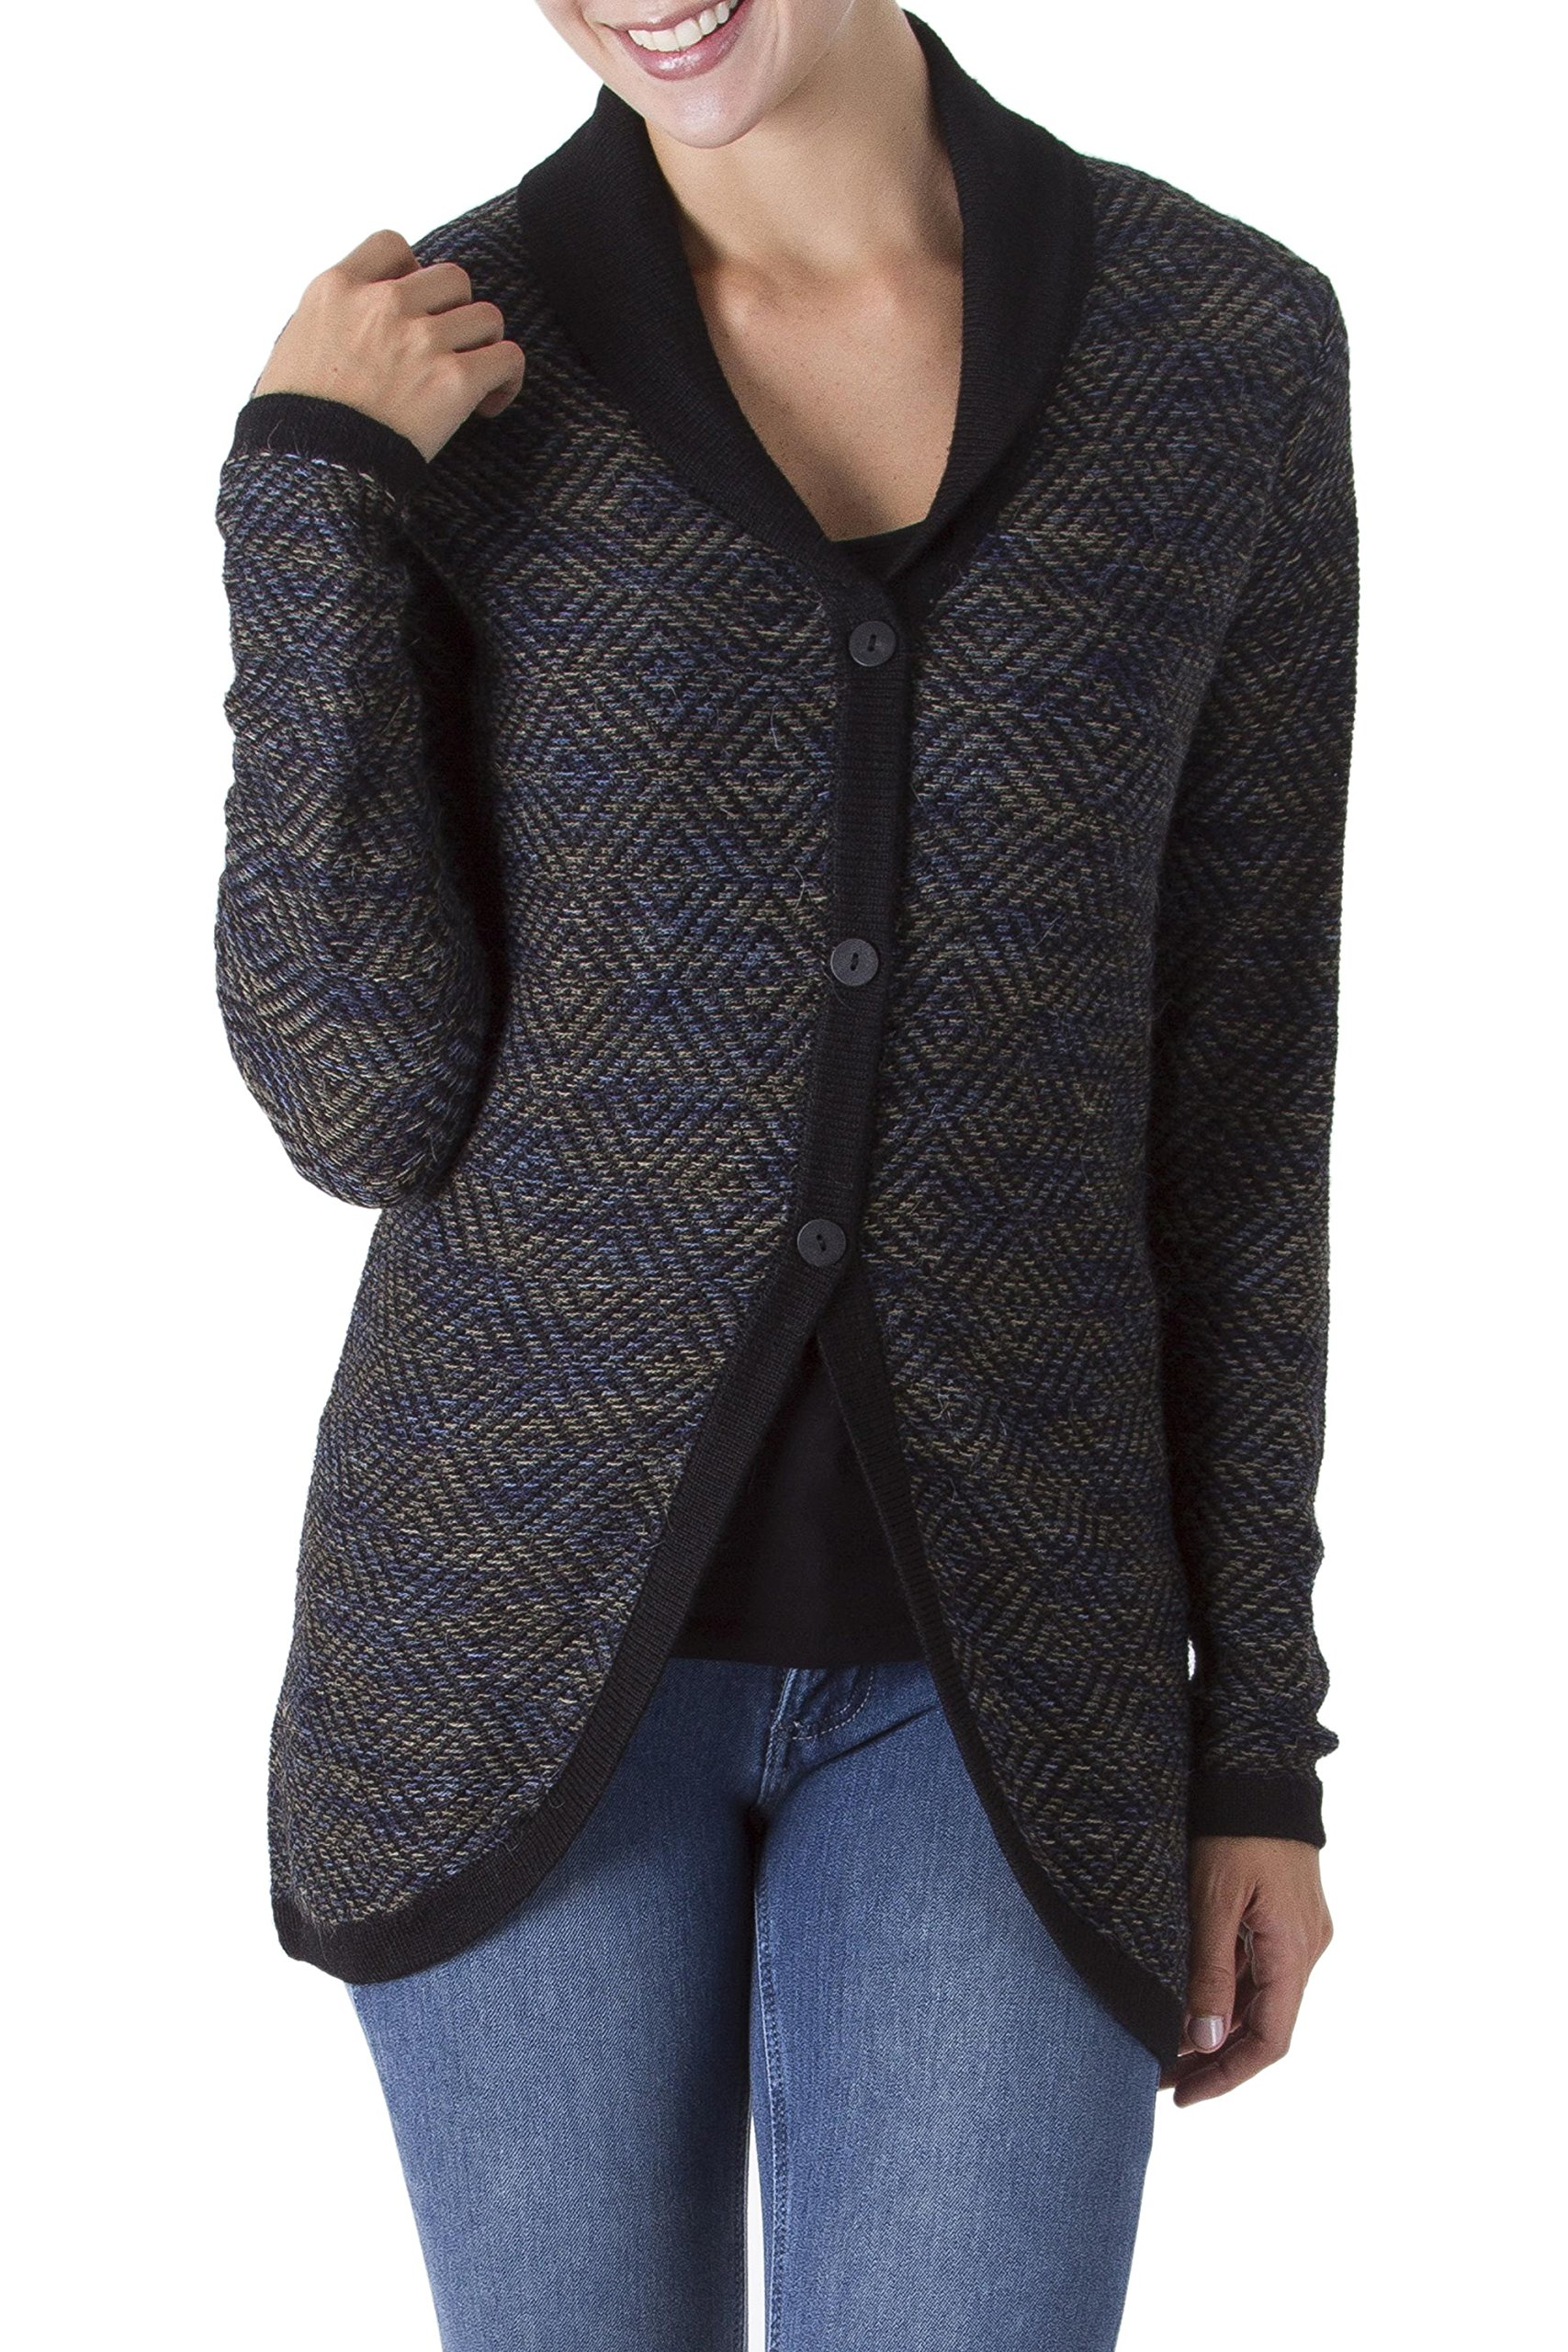 NOVICA Black And Gray 100% Alpaca Cardigan, 'Textured Andes In Black'